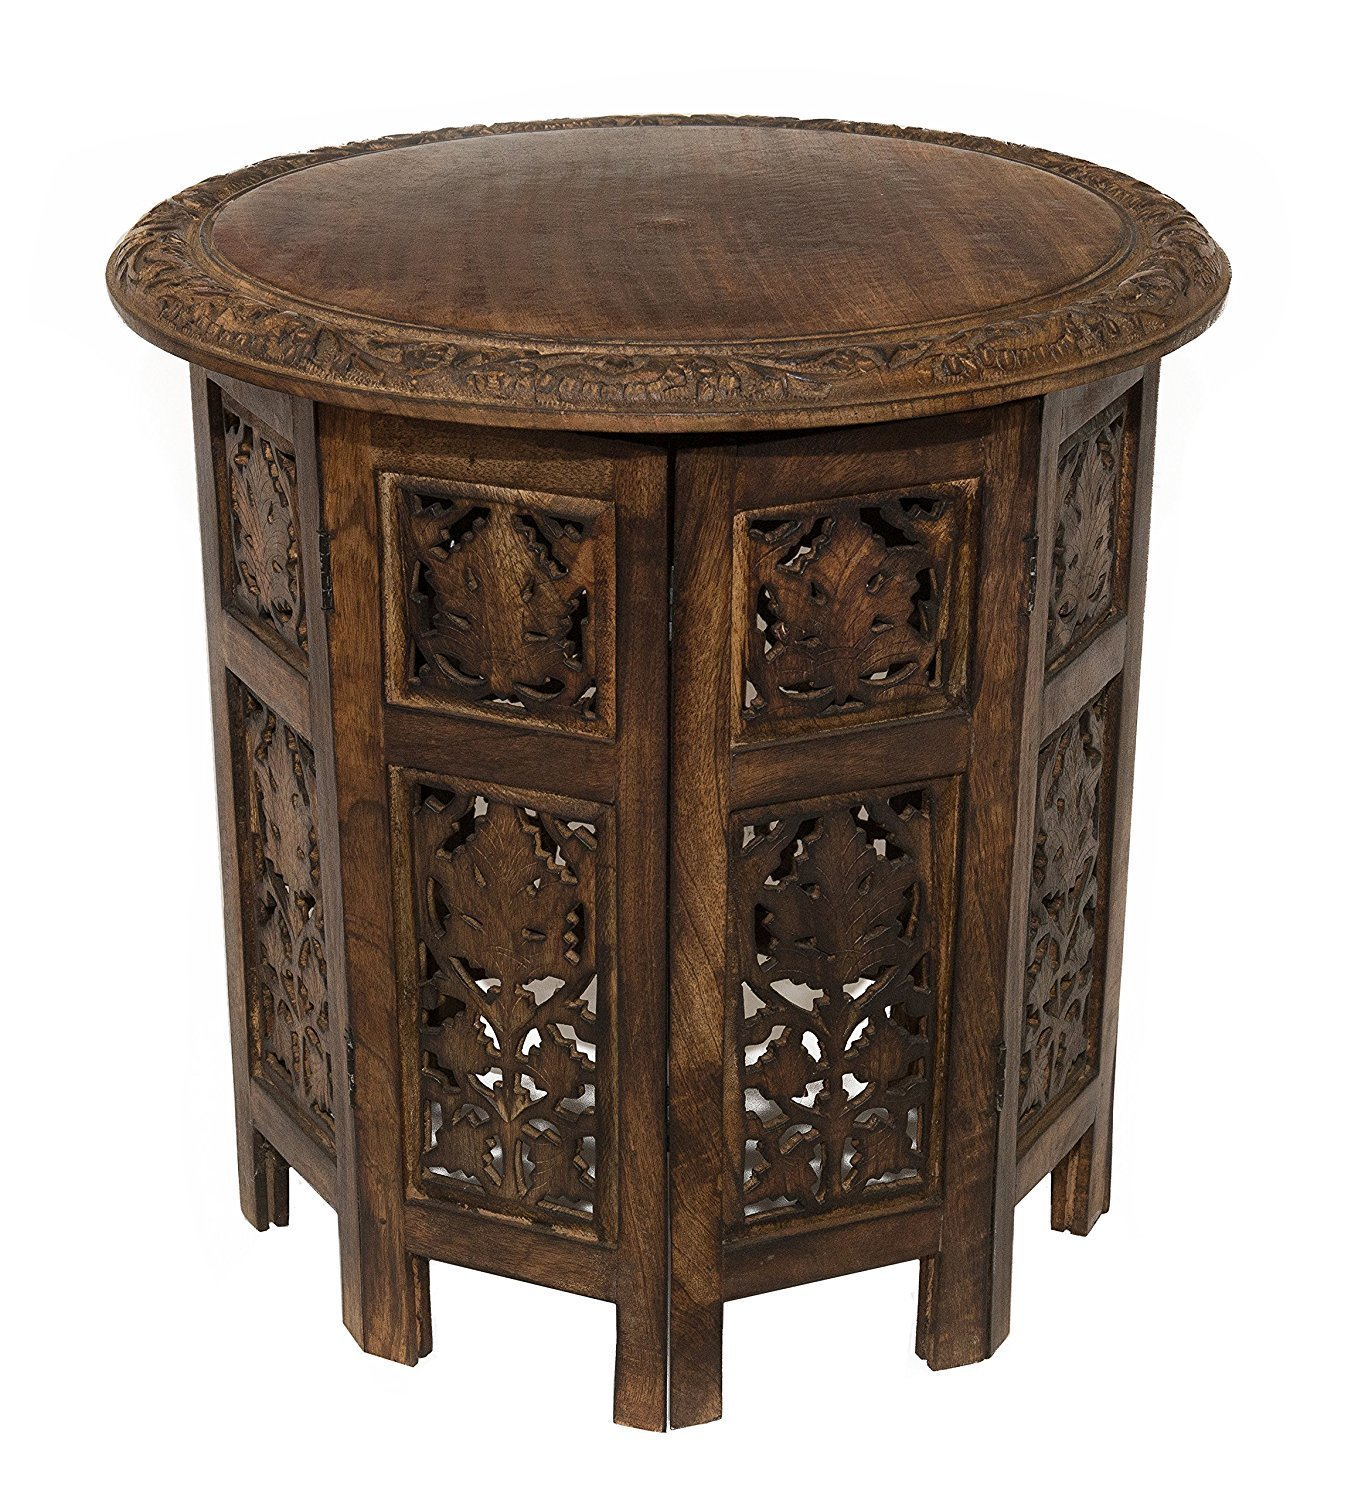 artesia solid wood hand carved rajasthan folding accent table brown coffee inch round top high kitchen dining unfinished legs bedside charging station low glass white sofa side